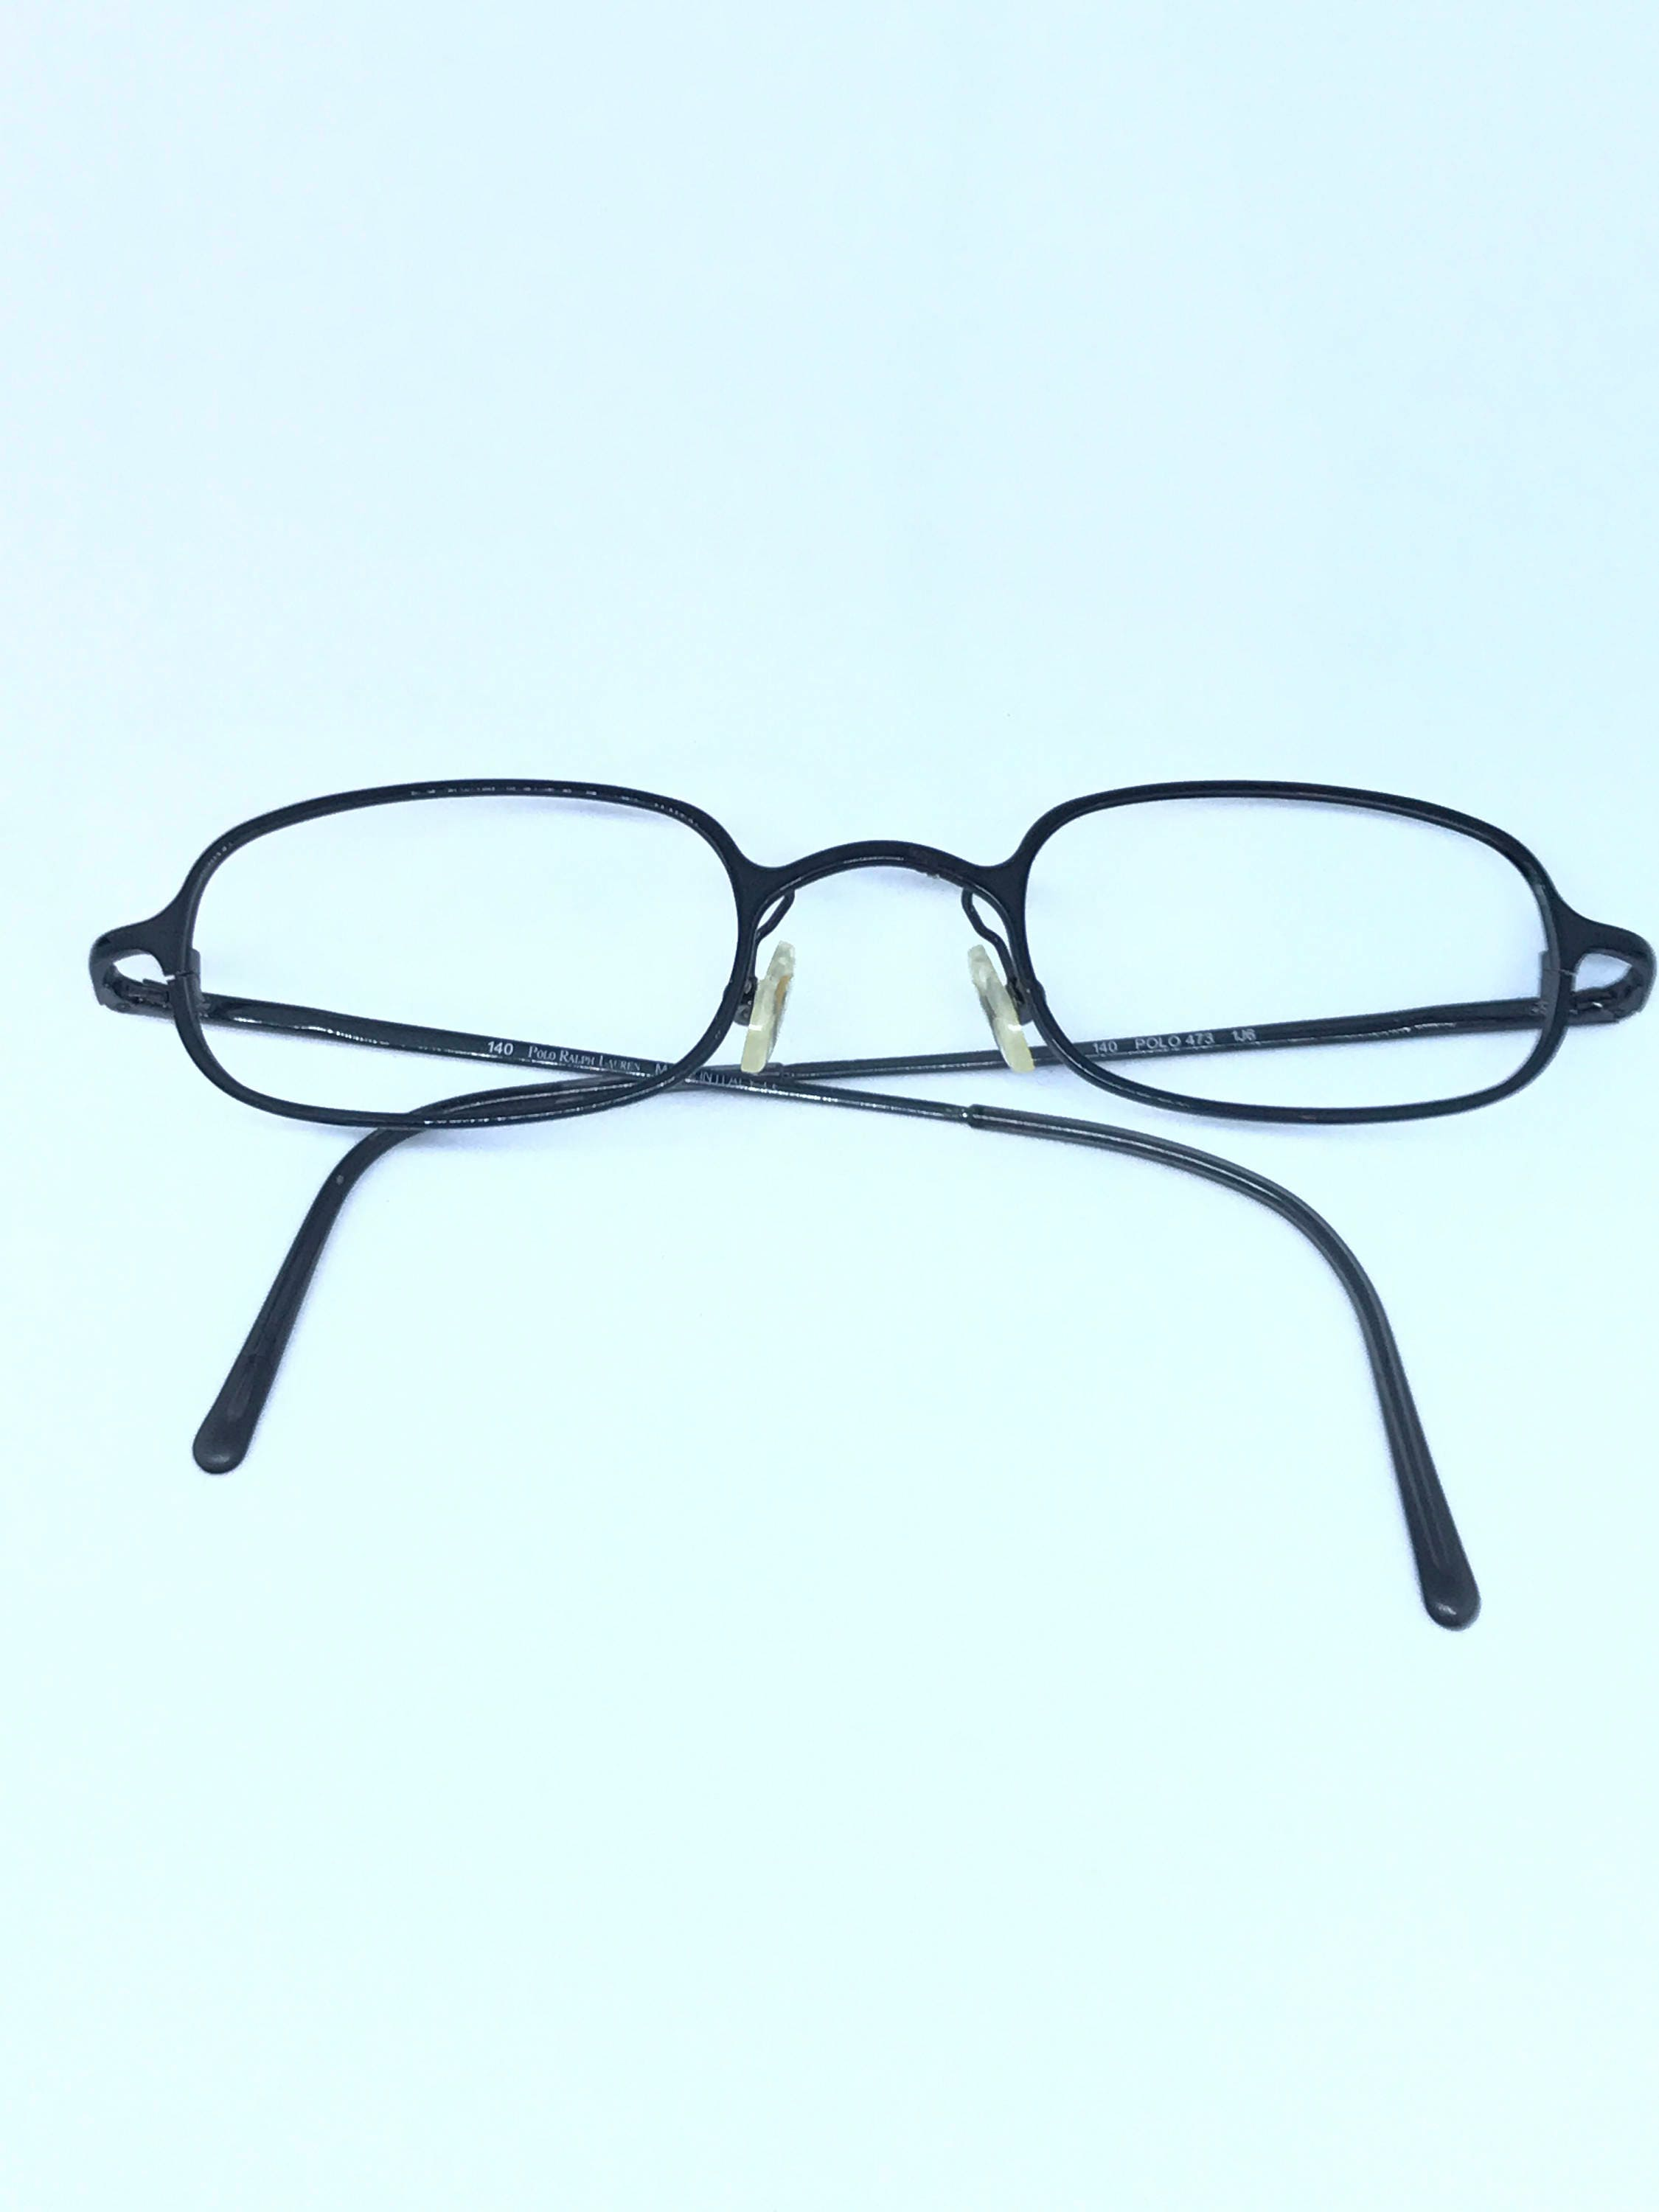 Vintage Polo Eyeglass Frame - Made in Italy - Vintage Polo Style ...